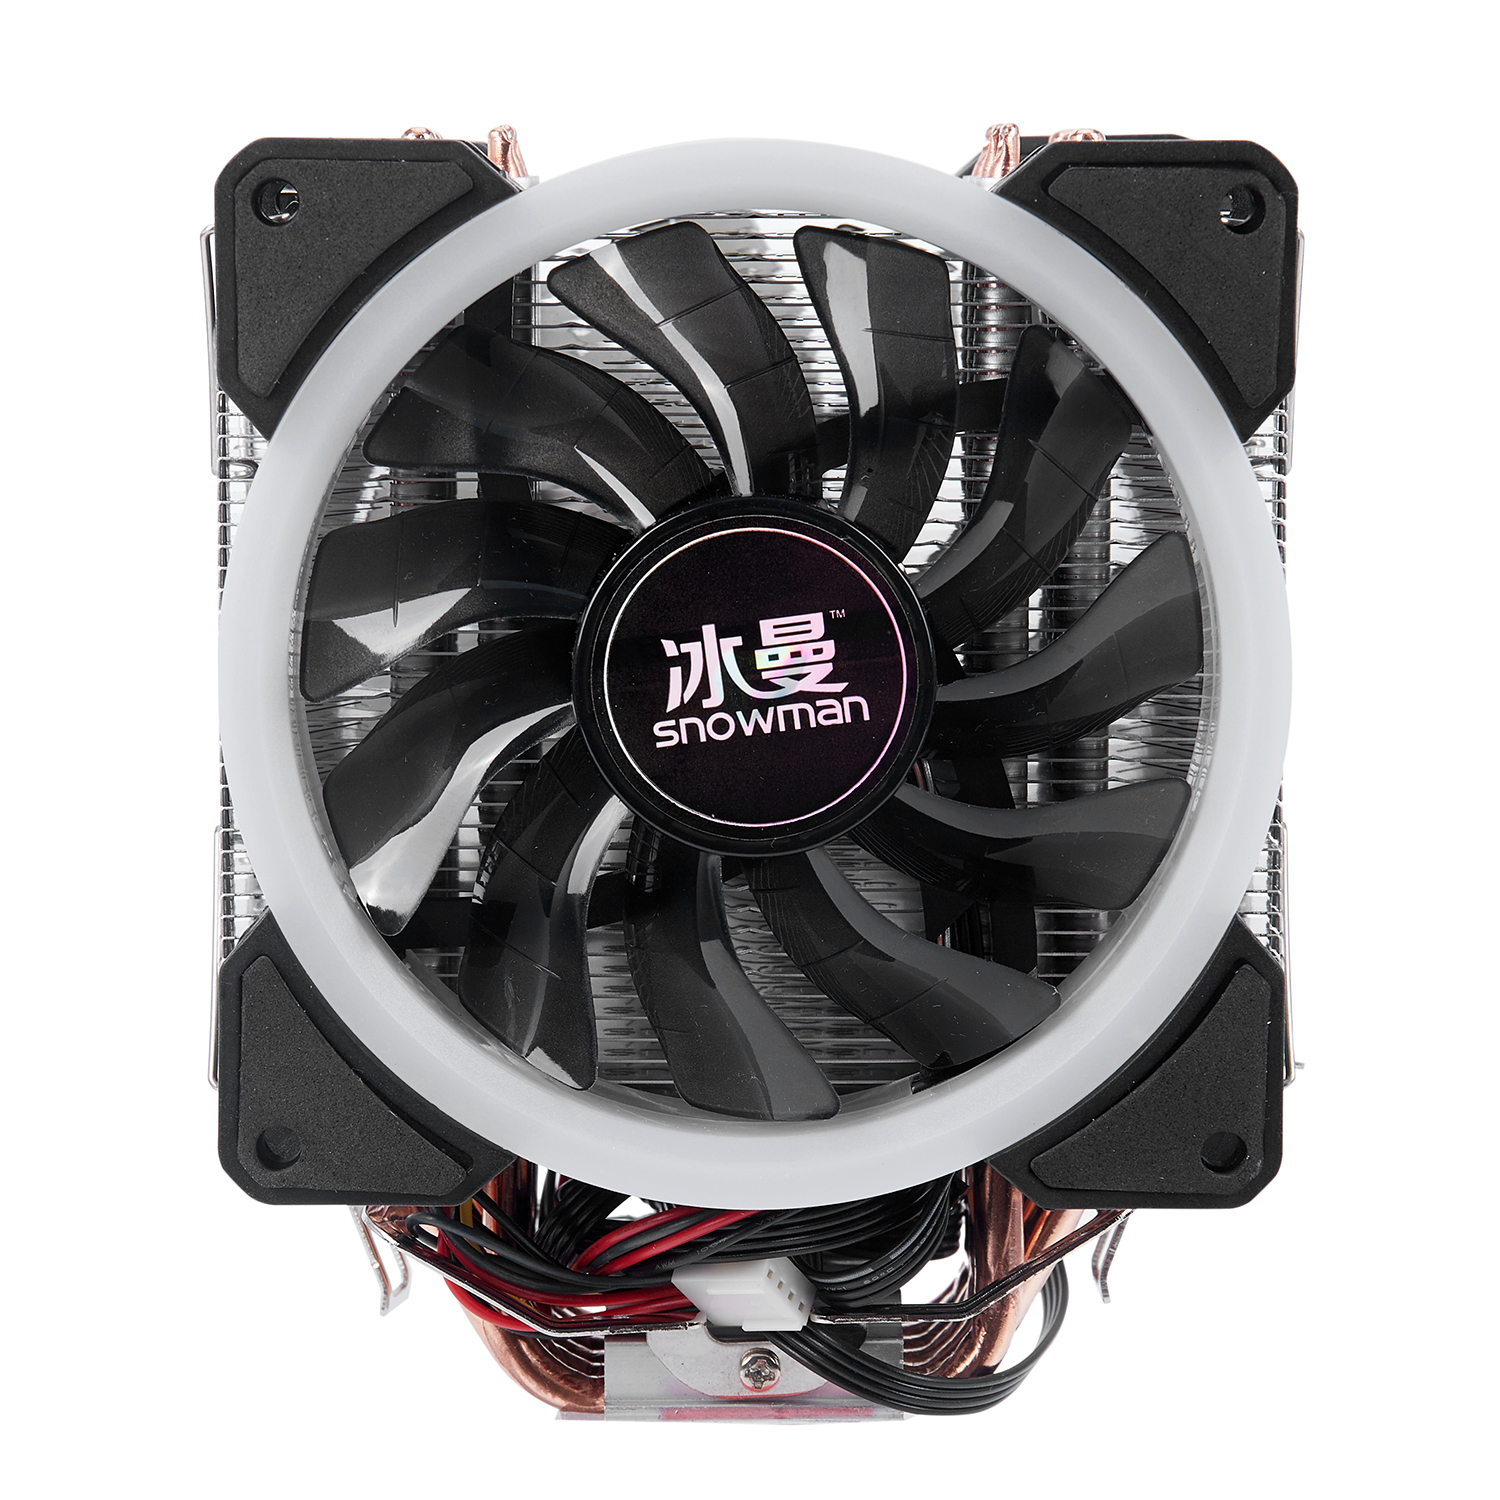 HOT-SNOWMAN 4PIN <font><b>CPU</b></font> <font><b>cooler</b></font> 6 heatpipe <font><b>RGB</b></font> LED Double fans cooling 12cm fan LGA775 <font><b>1151</b></font> 115x 1366 support Intel AMD image